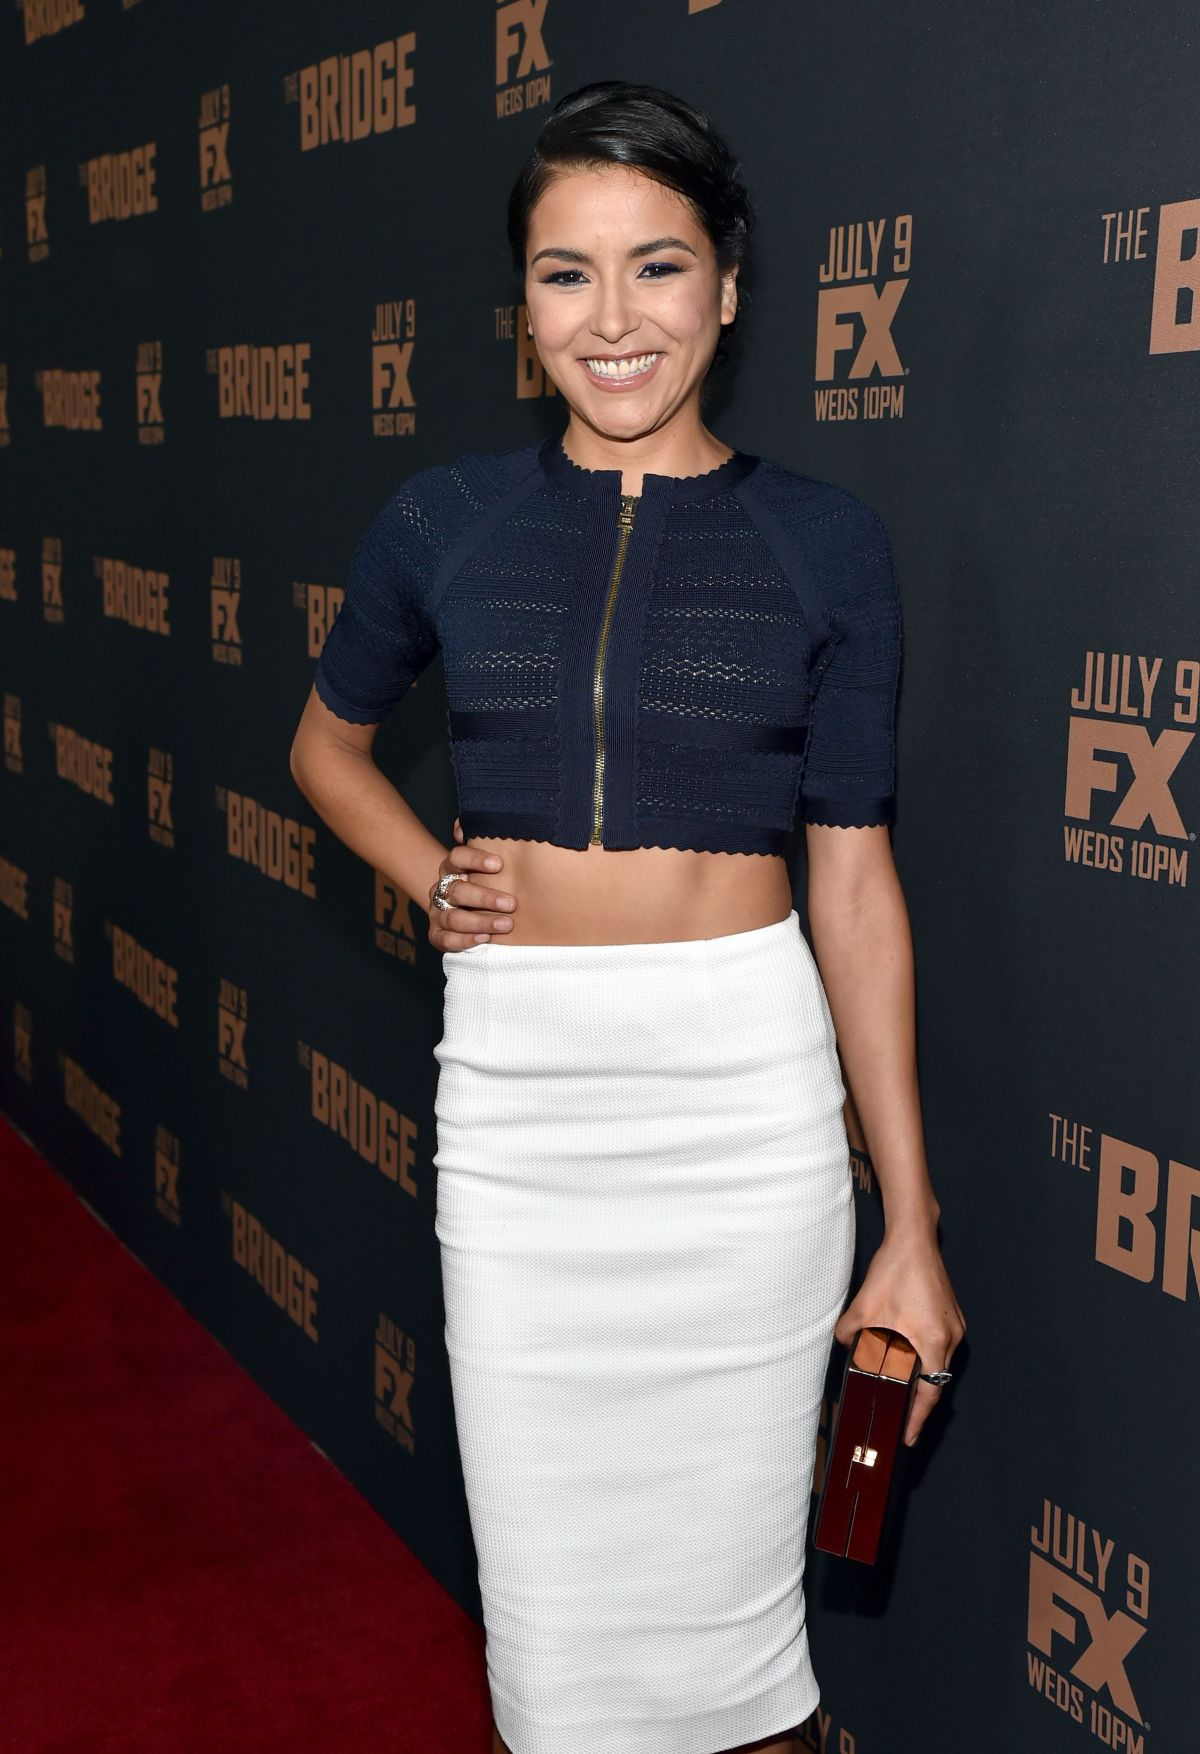 EMILY RIOS at The Bridge Season 2 Premiere in West Hollywood